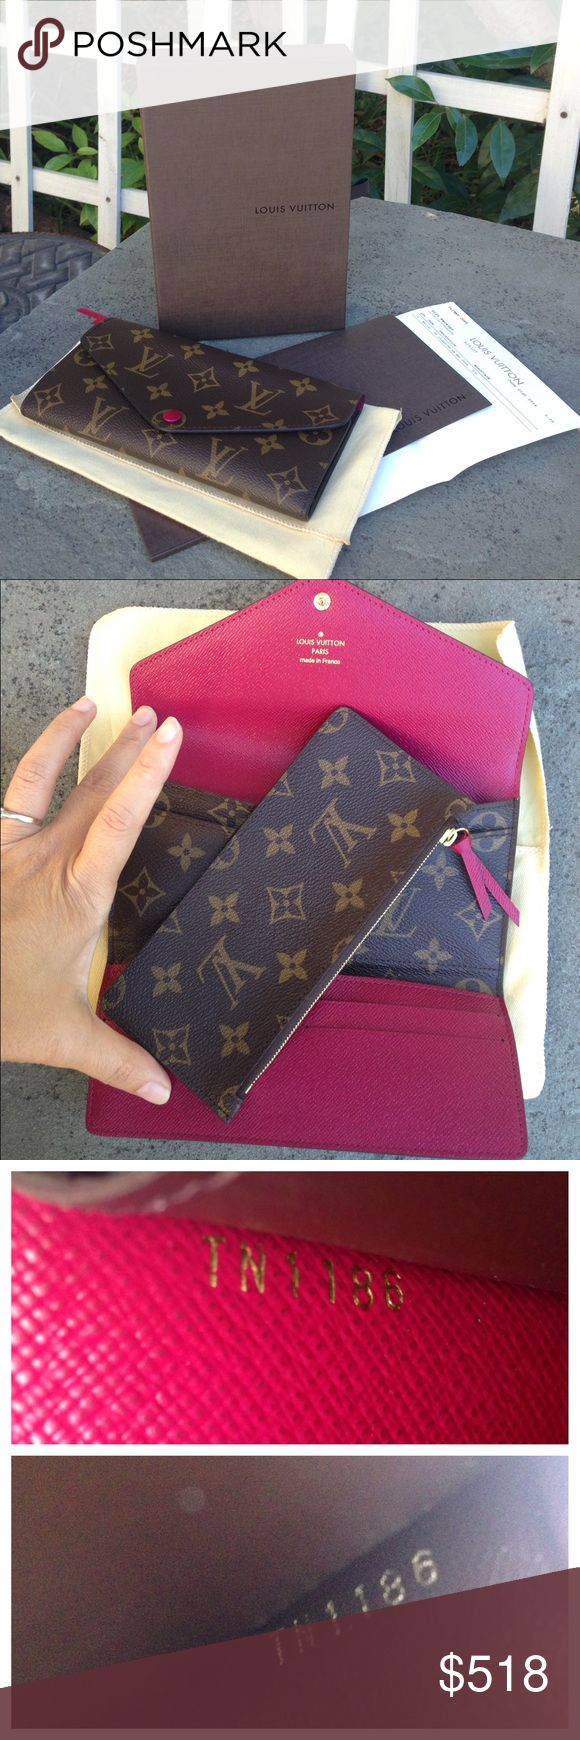 Louis Vuitton Josephine Wallet DUST BAG, BOX, REC! Paid over $500 with tax.  Brand new, never been used.  In perfect condition.  Will include box, original purchase receipt and box. Louis Vuitton Bags Wallets